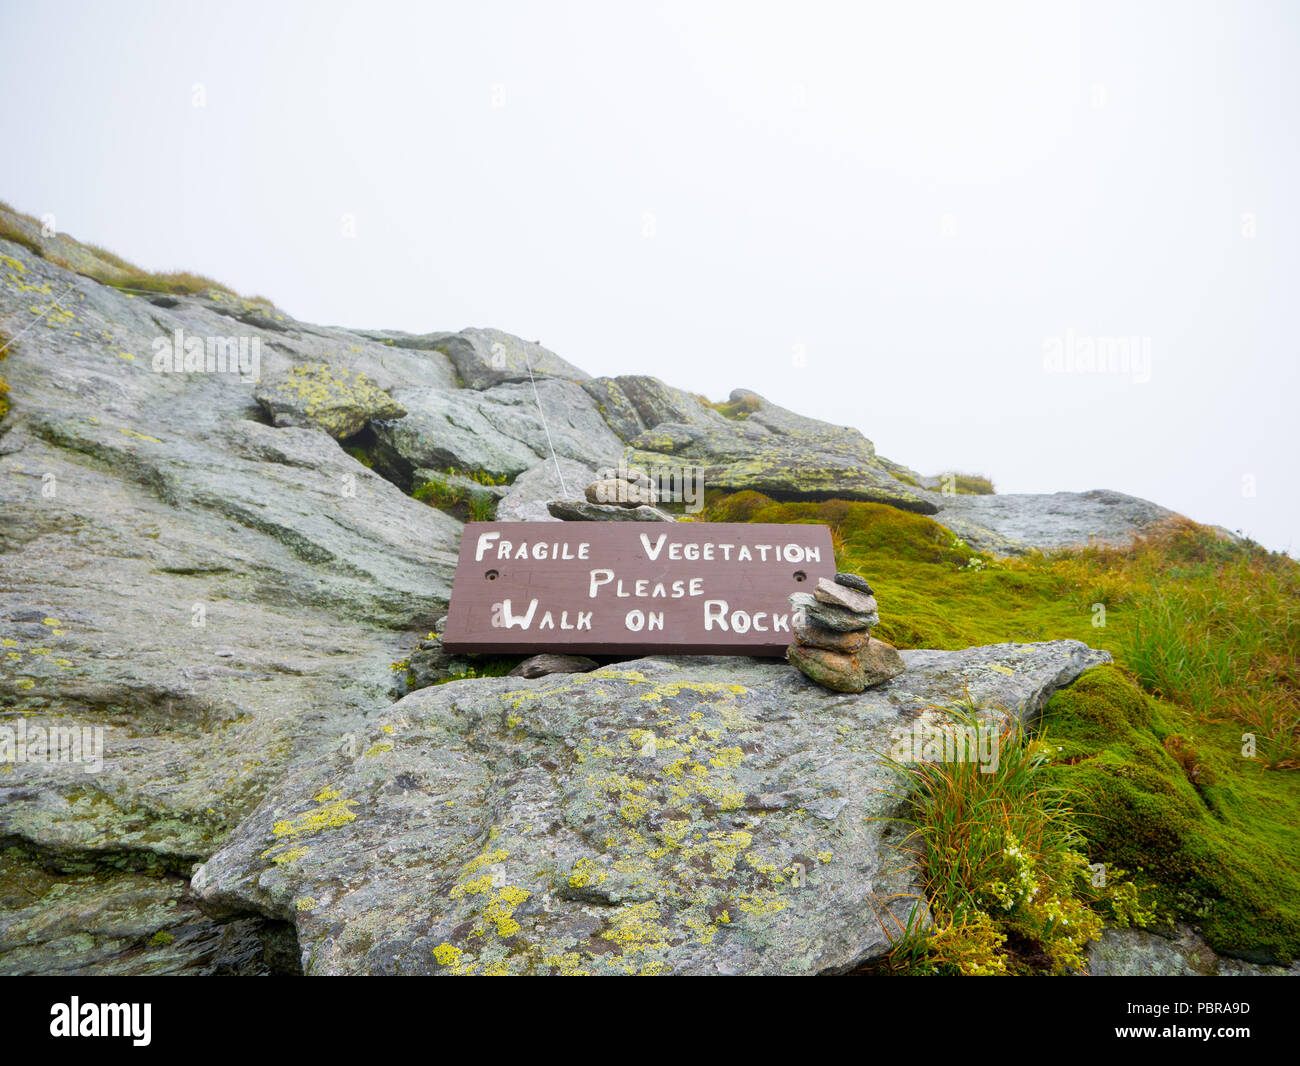 'Fragile vegetation'. Can be killed by footsteps. Please stay on trails.' sign in the Camels Hump mountain in Vermont - Stock Image